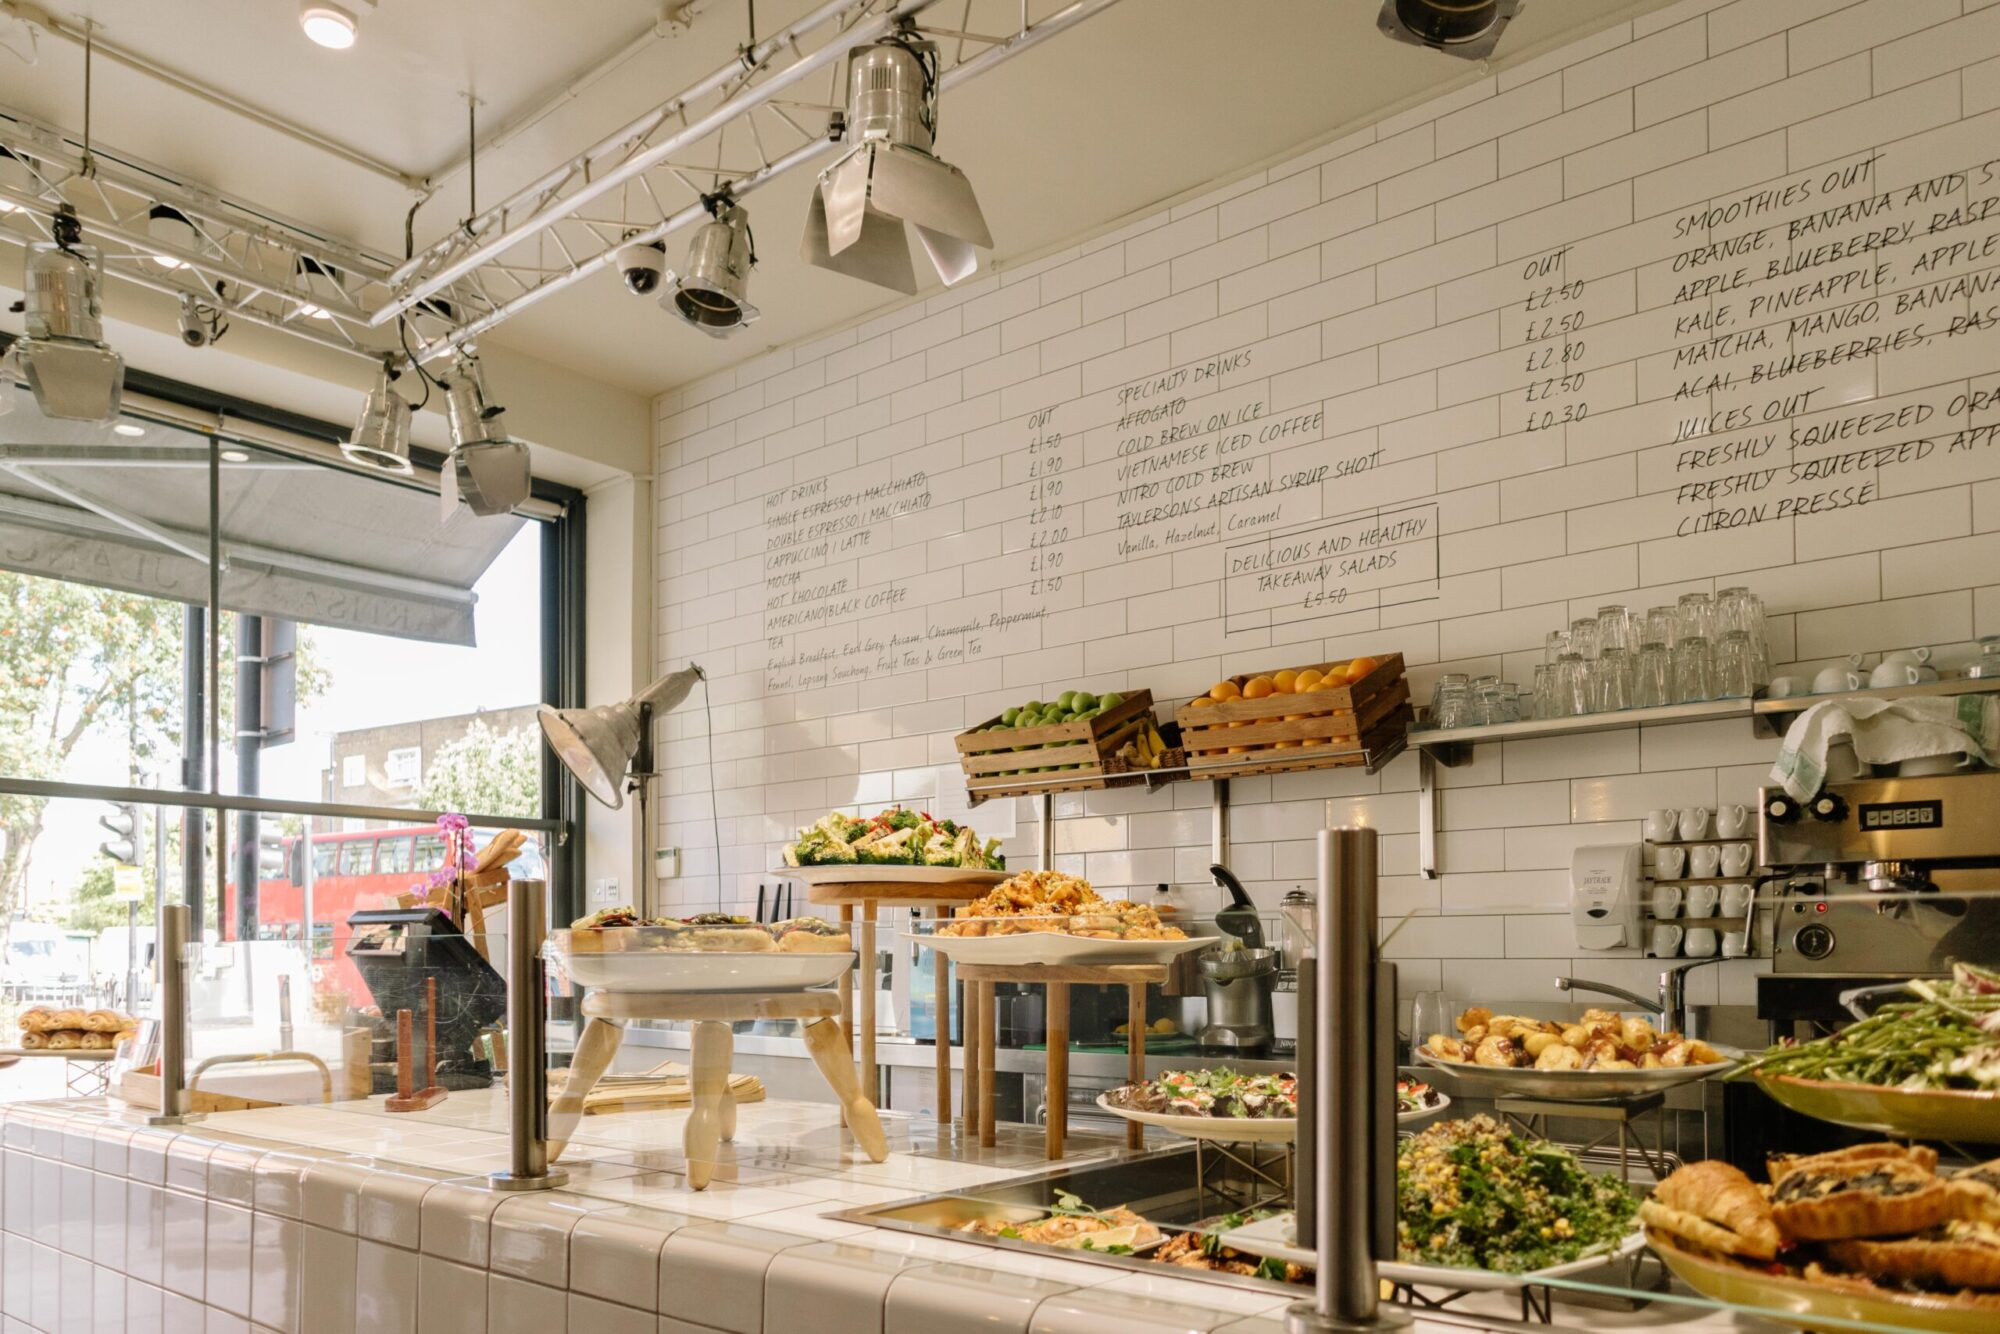 A display of sandwiches and salads at Bounlangerie Bon Matin on Upper Tollington Park in Stroud Green North London.